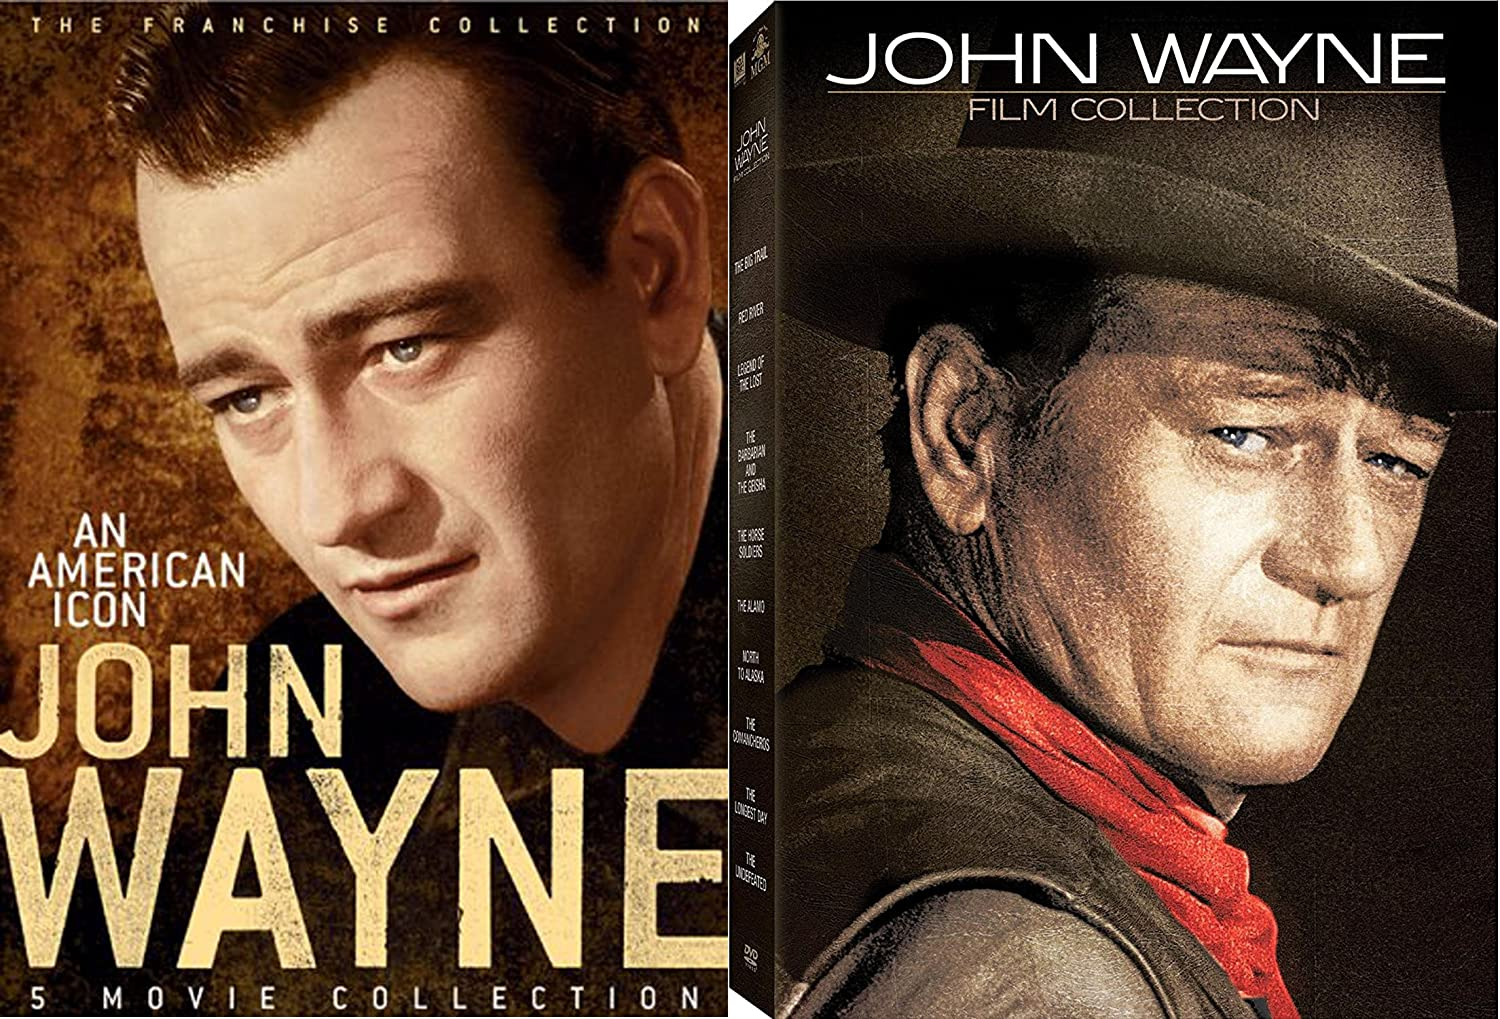 The John Wayne 15-Movie Franchise Film Collection - 12-DVD Bundle with The Conquerer, Jet Pilot, Red River, The Big Trail, Comancheros & More!